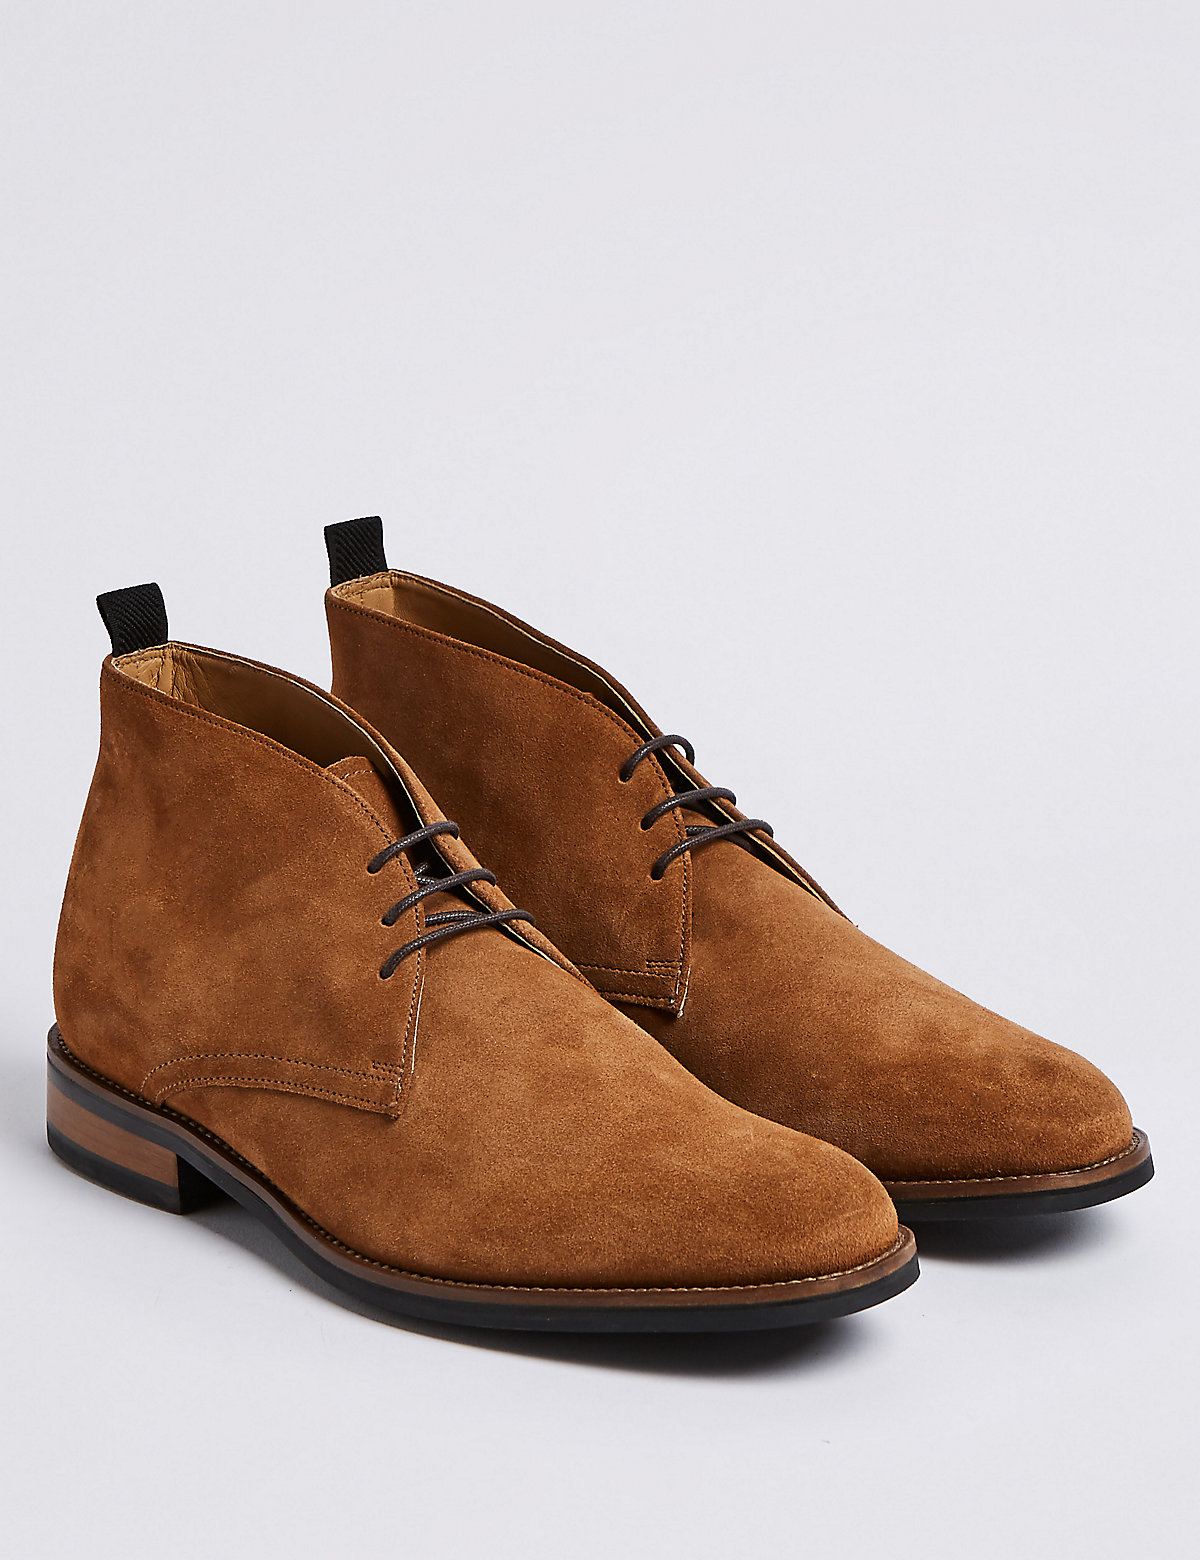 Marks & Spencer Tan Suede Lace-up Chukka Boots